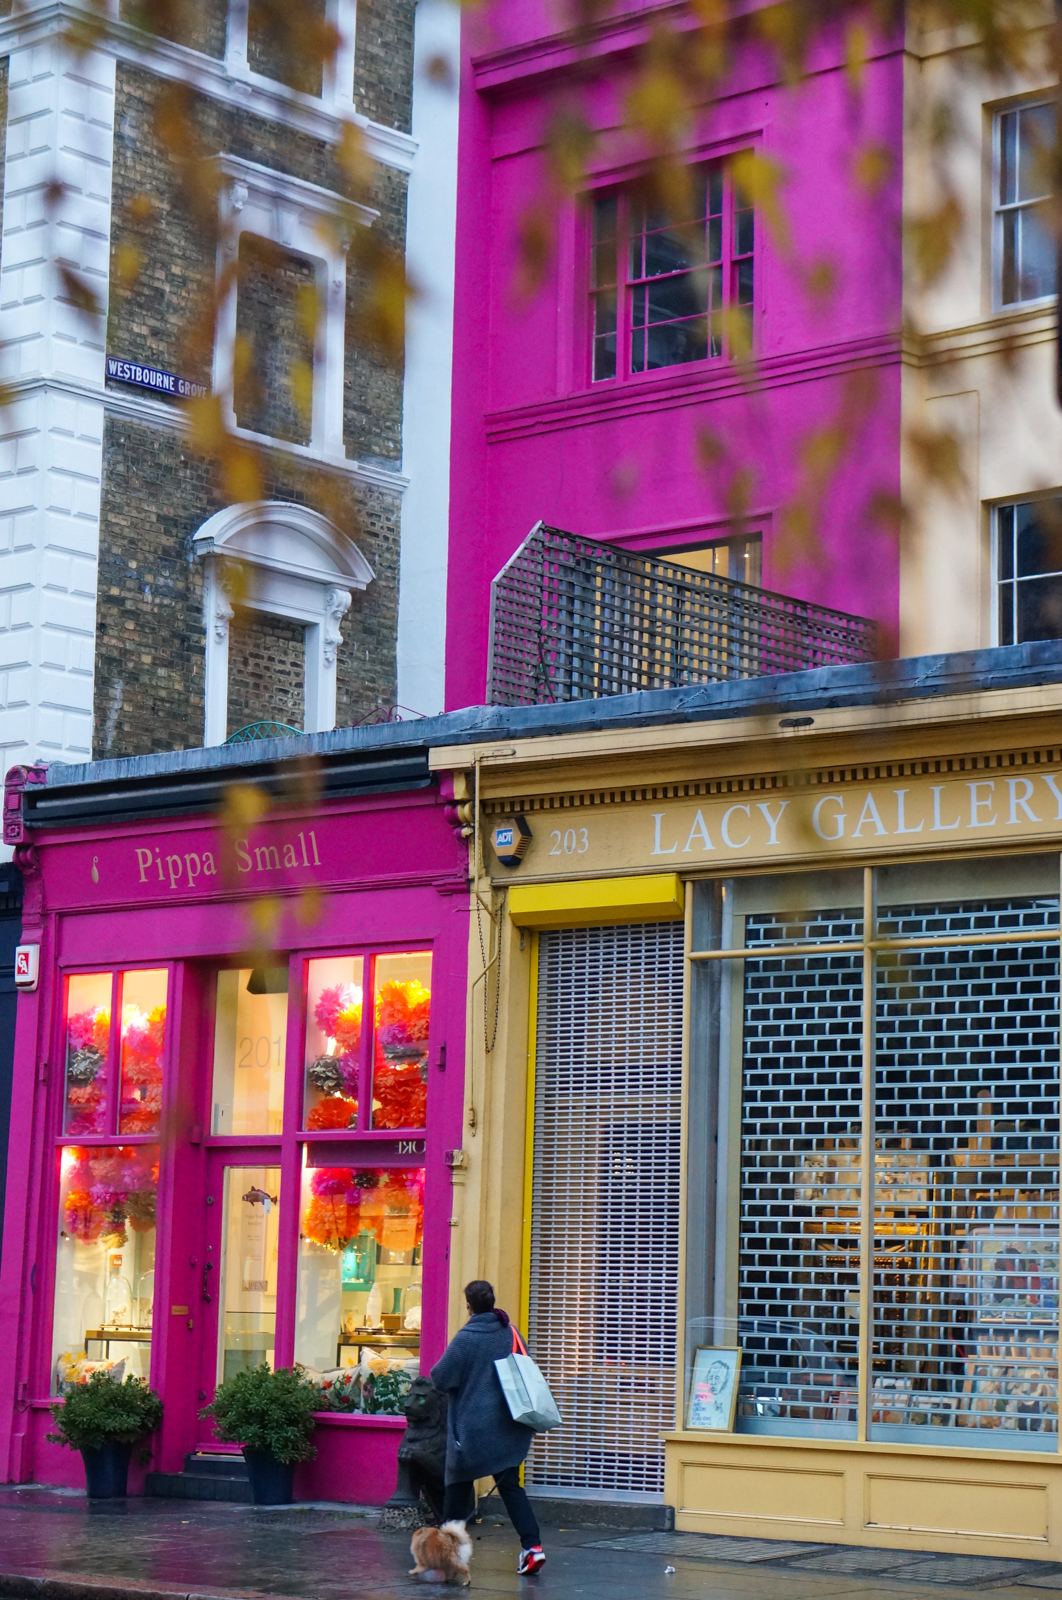 notting hill londres, notting hill london, notting hill hiver, idée balade hiver londres